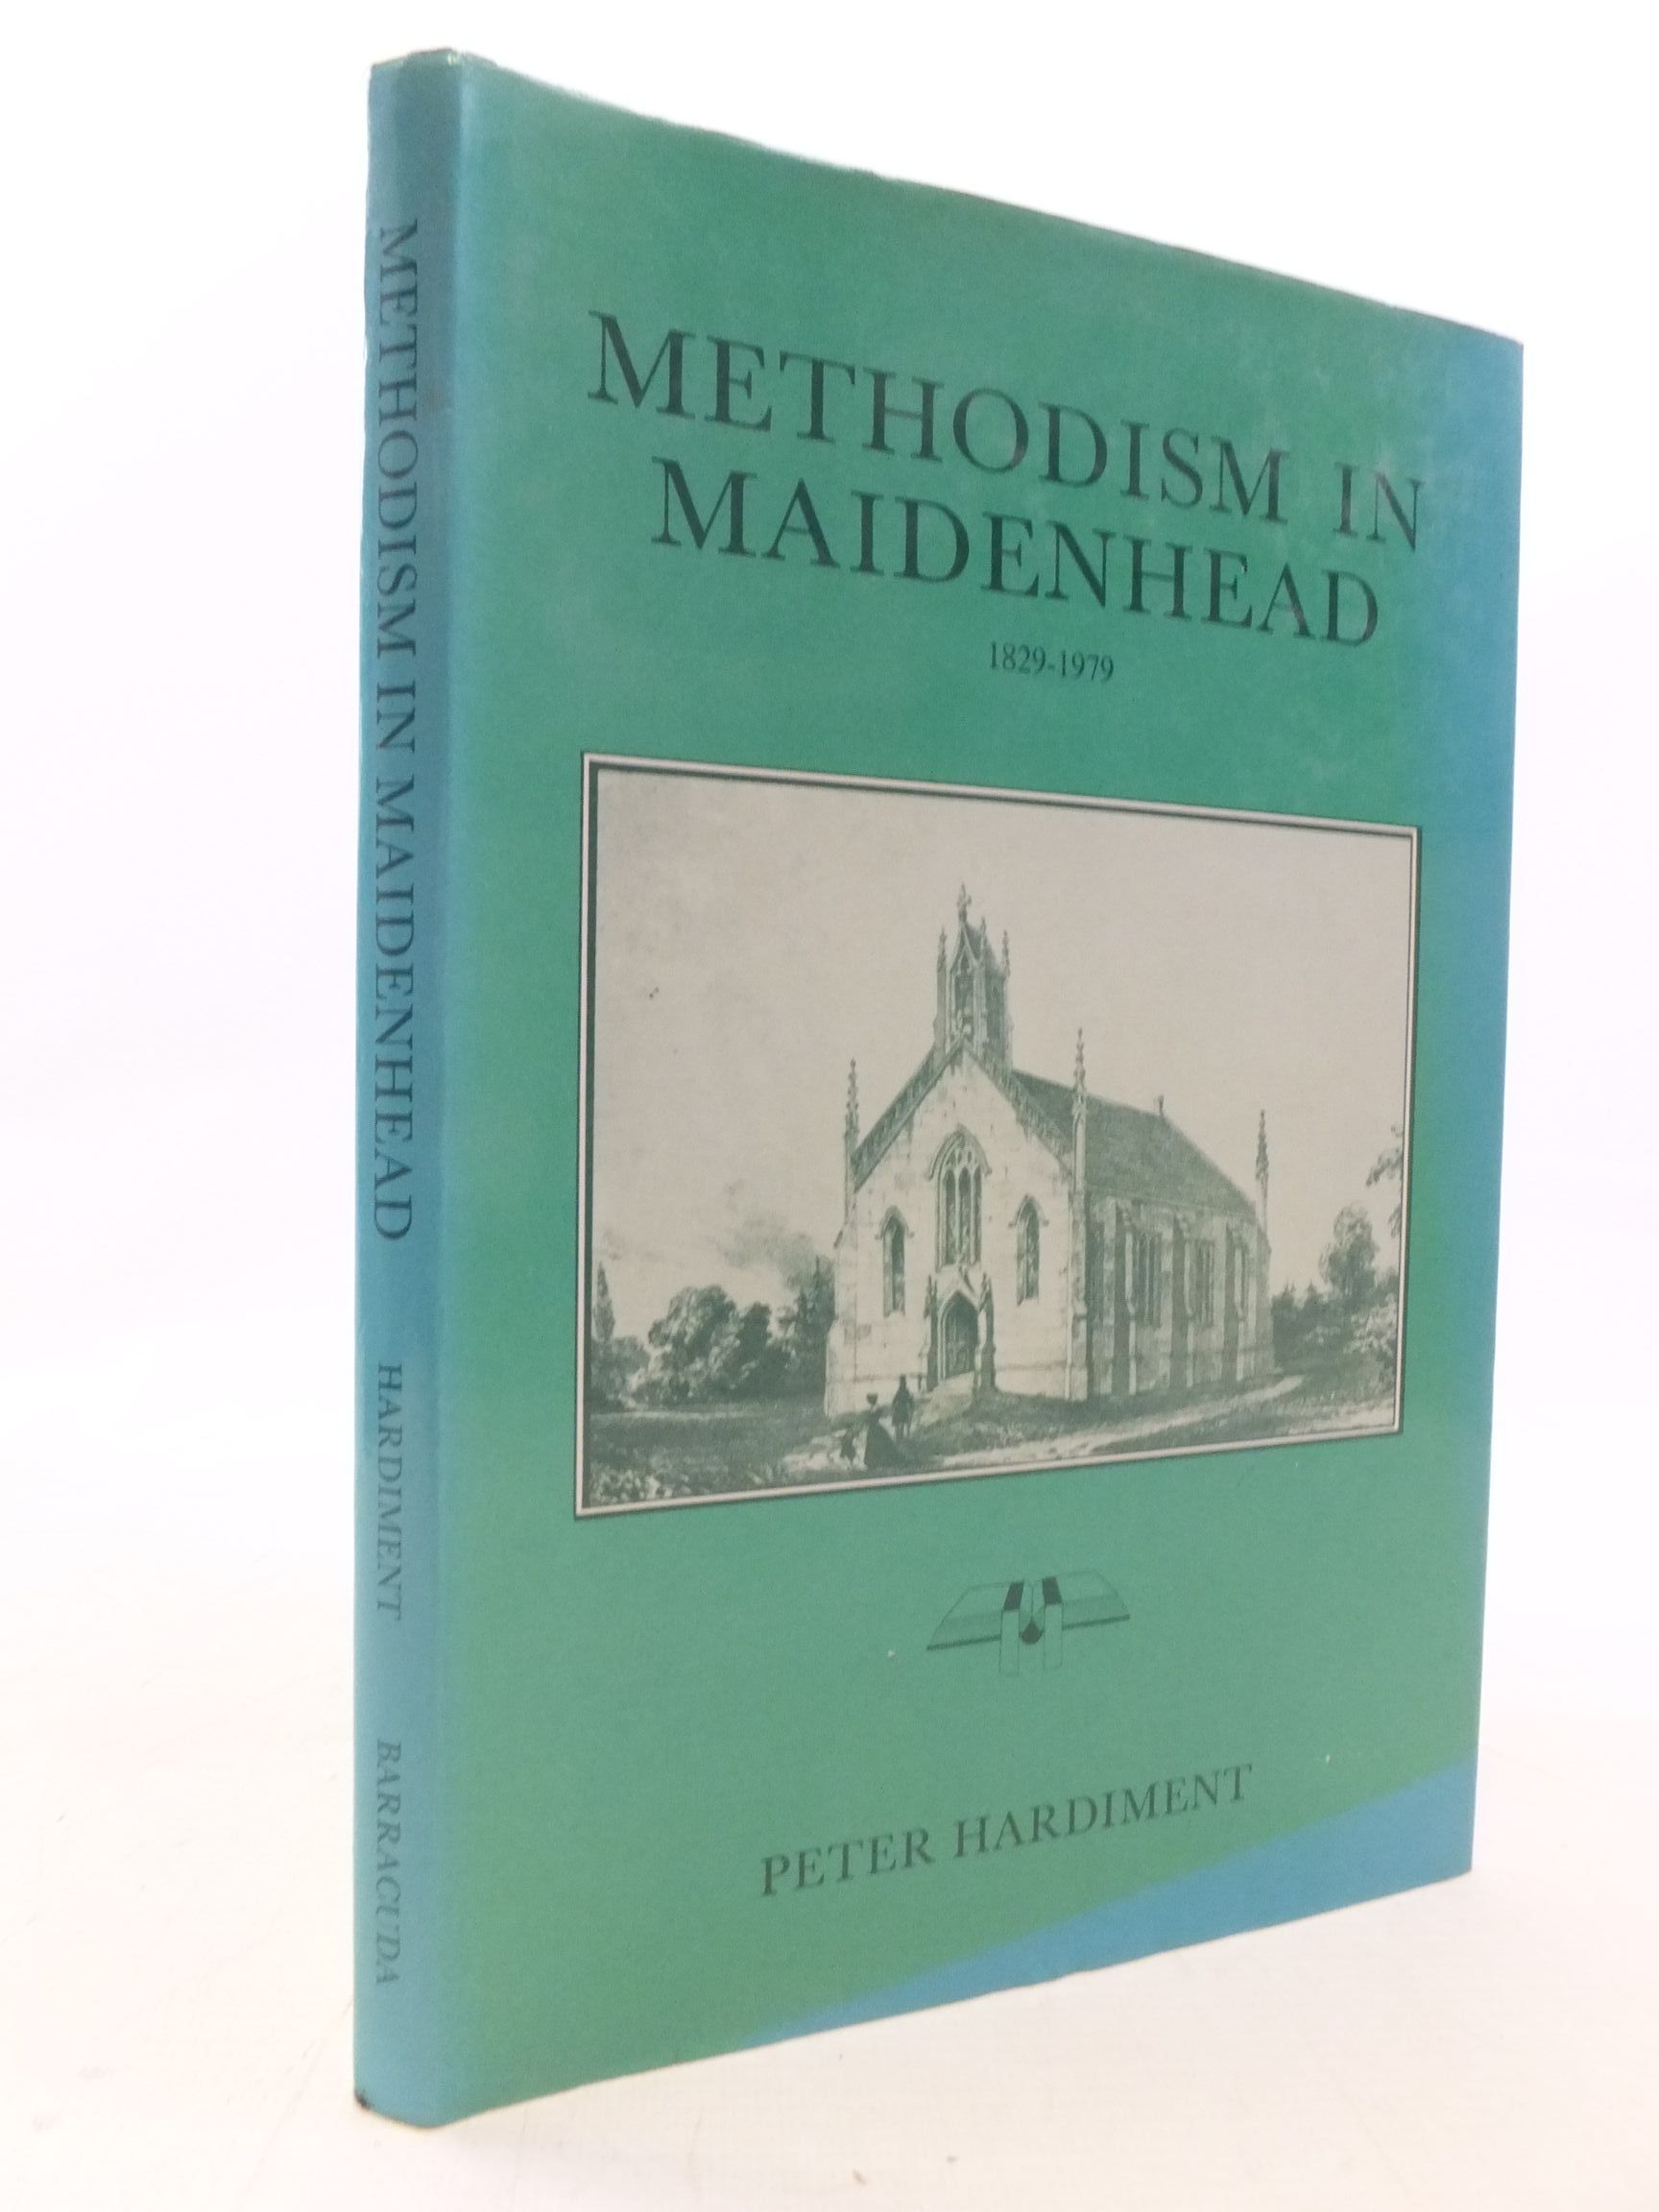 Photo of METHODISM IN MAIDENHEAD 1829-1979 written by Hardiment, Peter published by Barracuda Books (STOCK CODE: 1711780)  for sale by Stella & Rose's Books